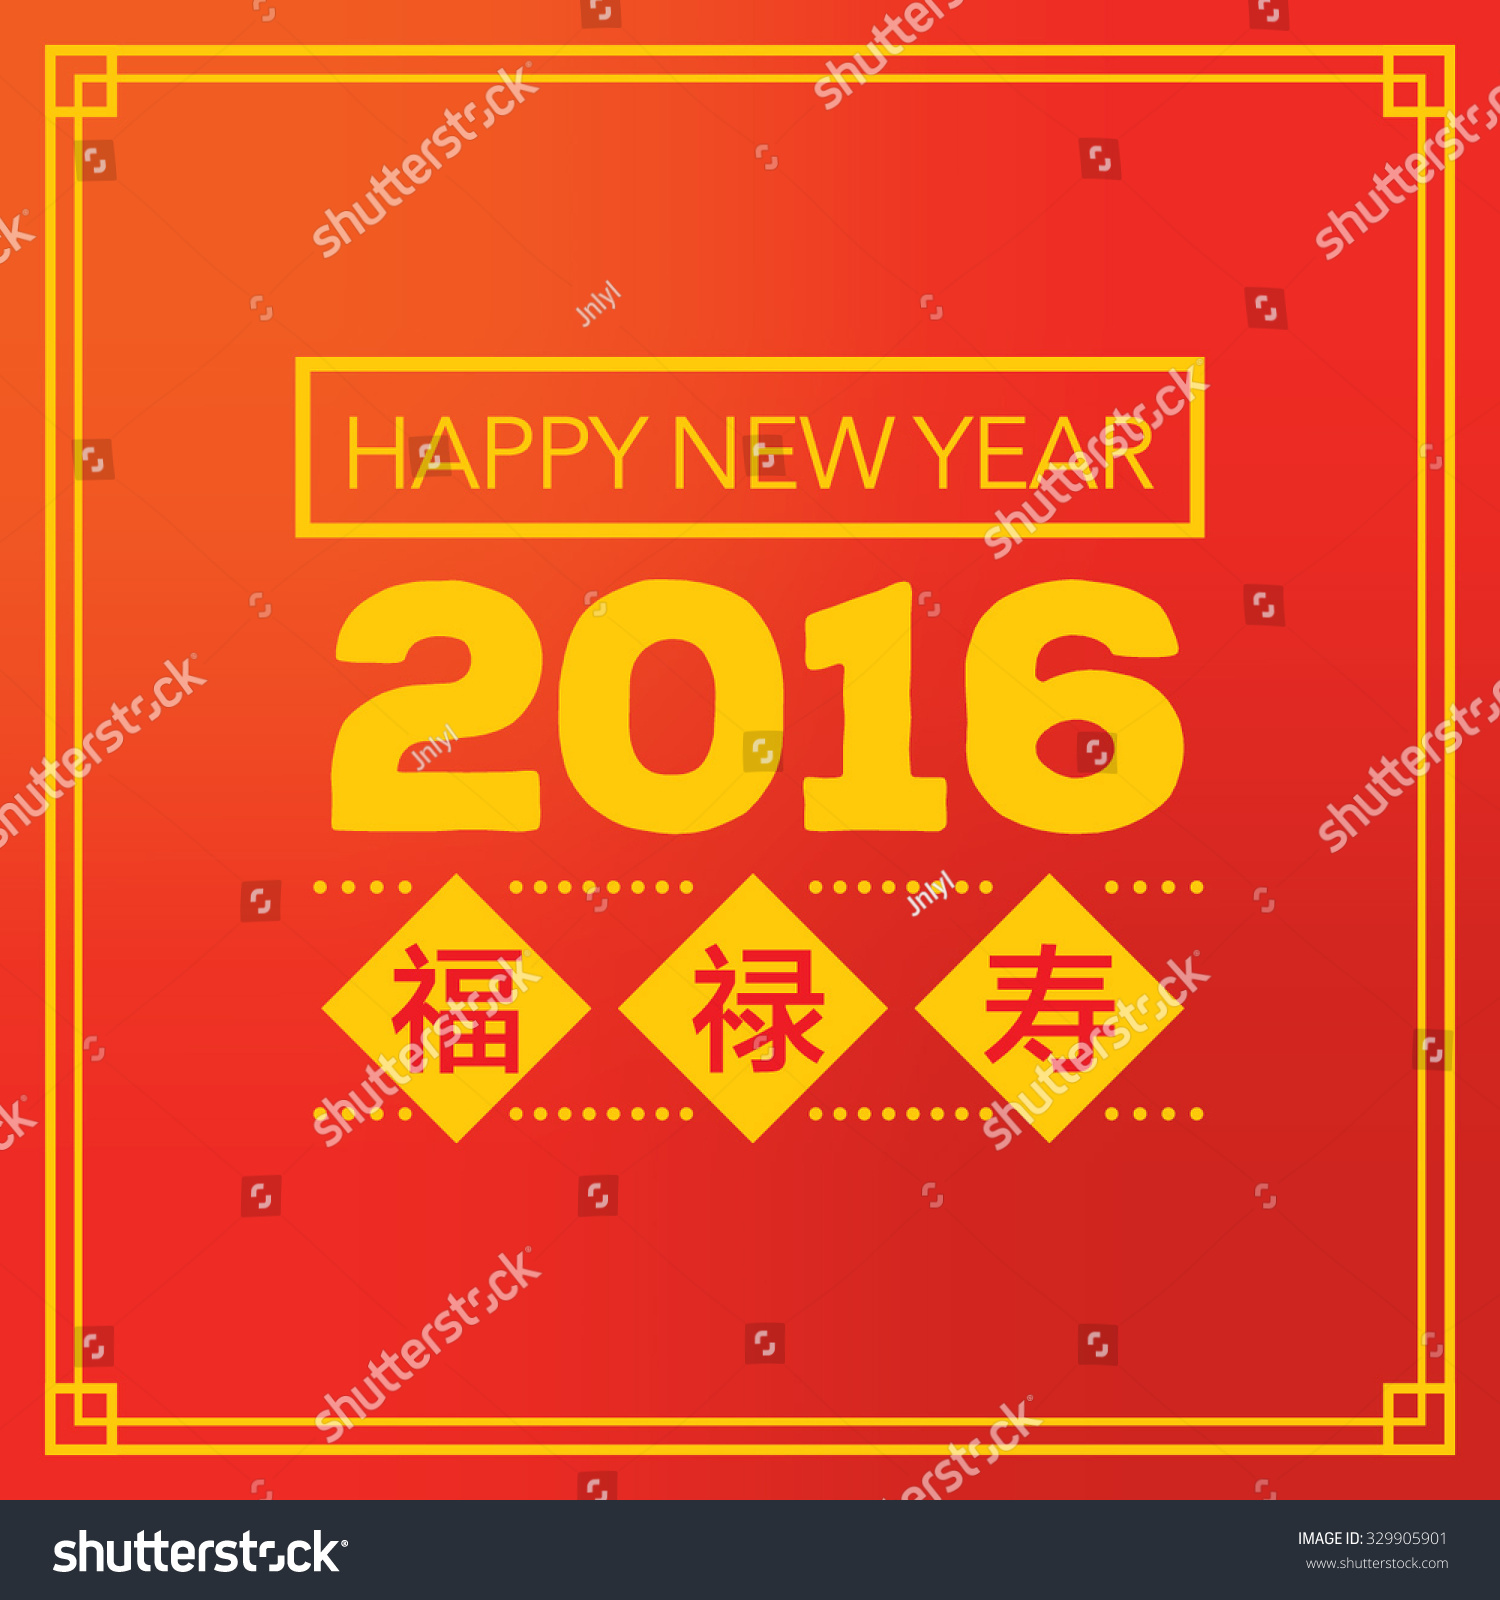 Royalty Free Chinese New Year Greetings Card Design 329905901